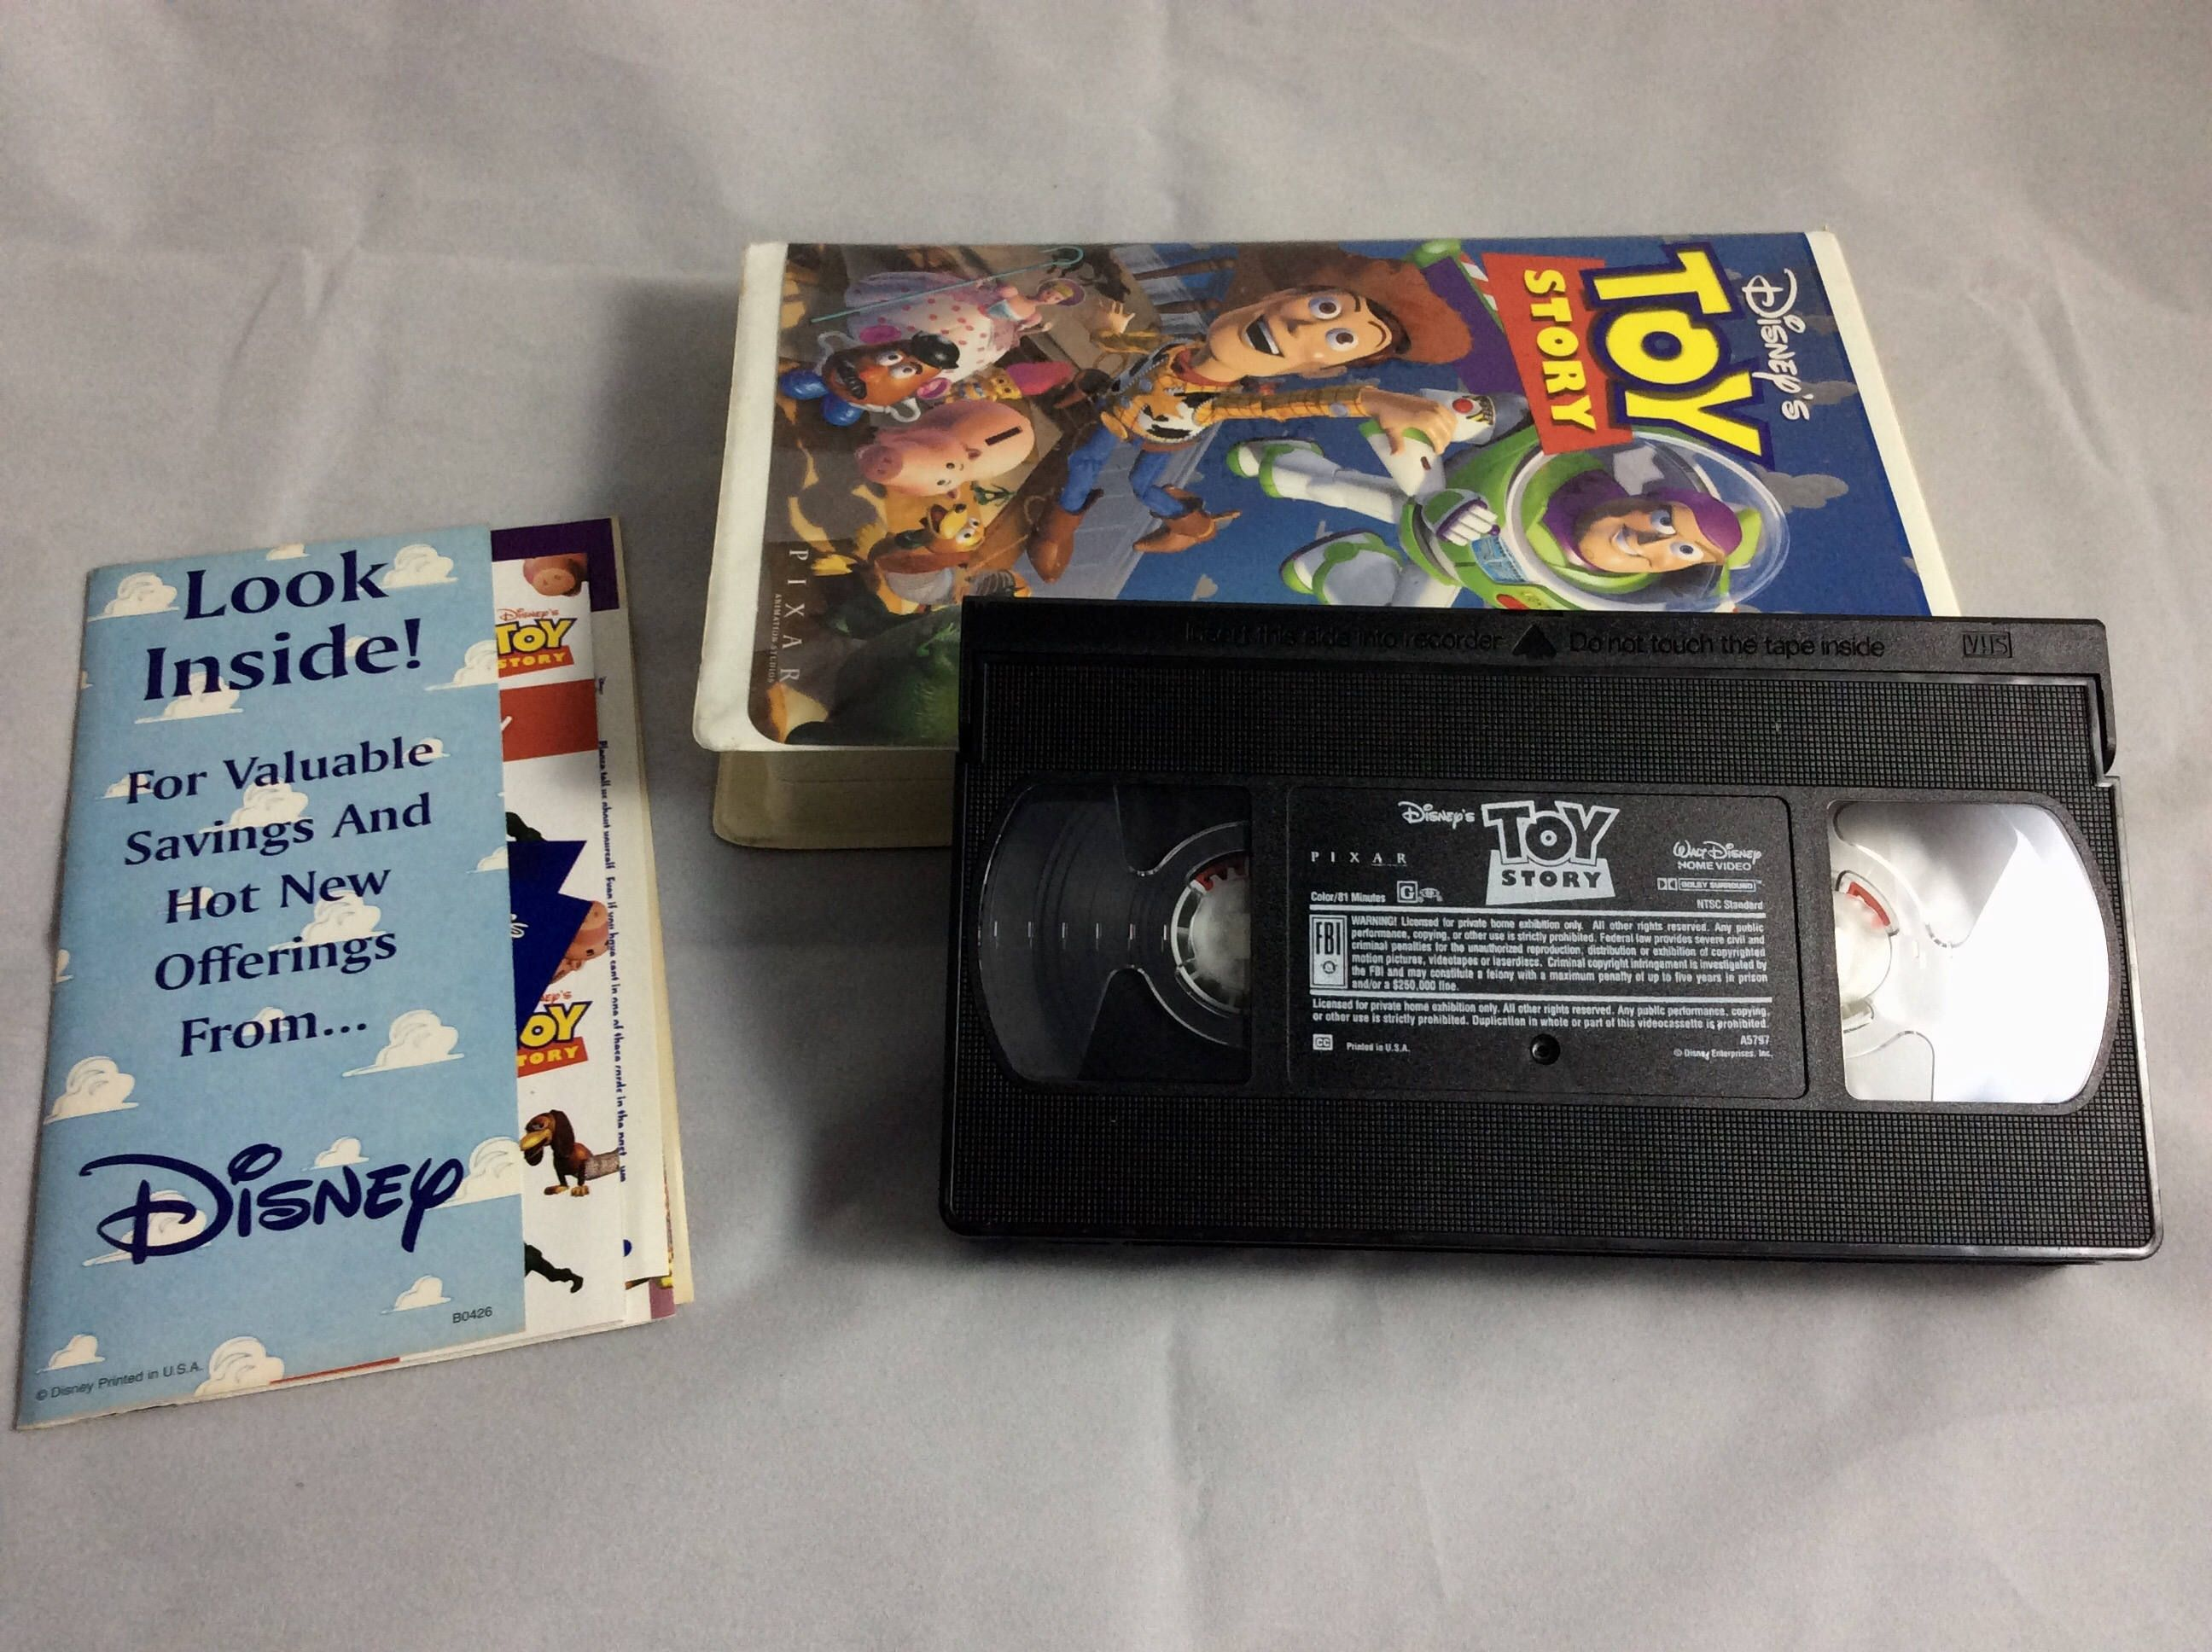 toy story on vhs tape - walt disney home video - vintage 90s